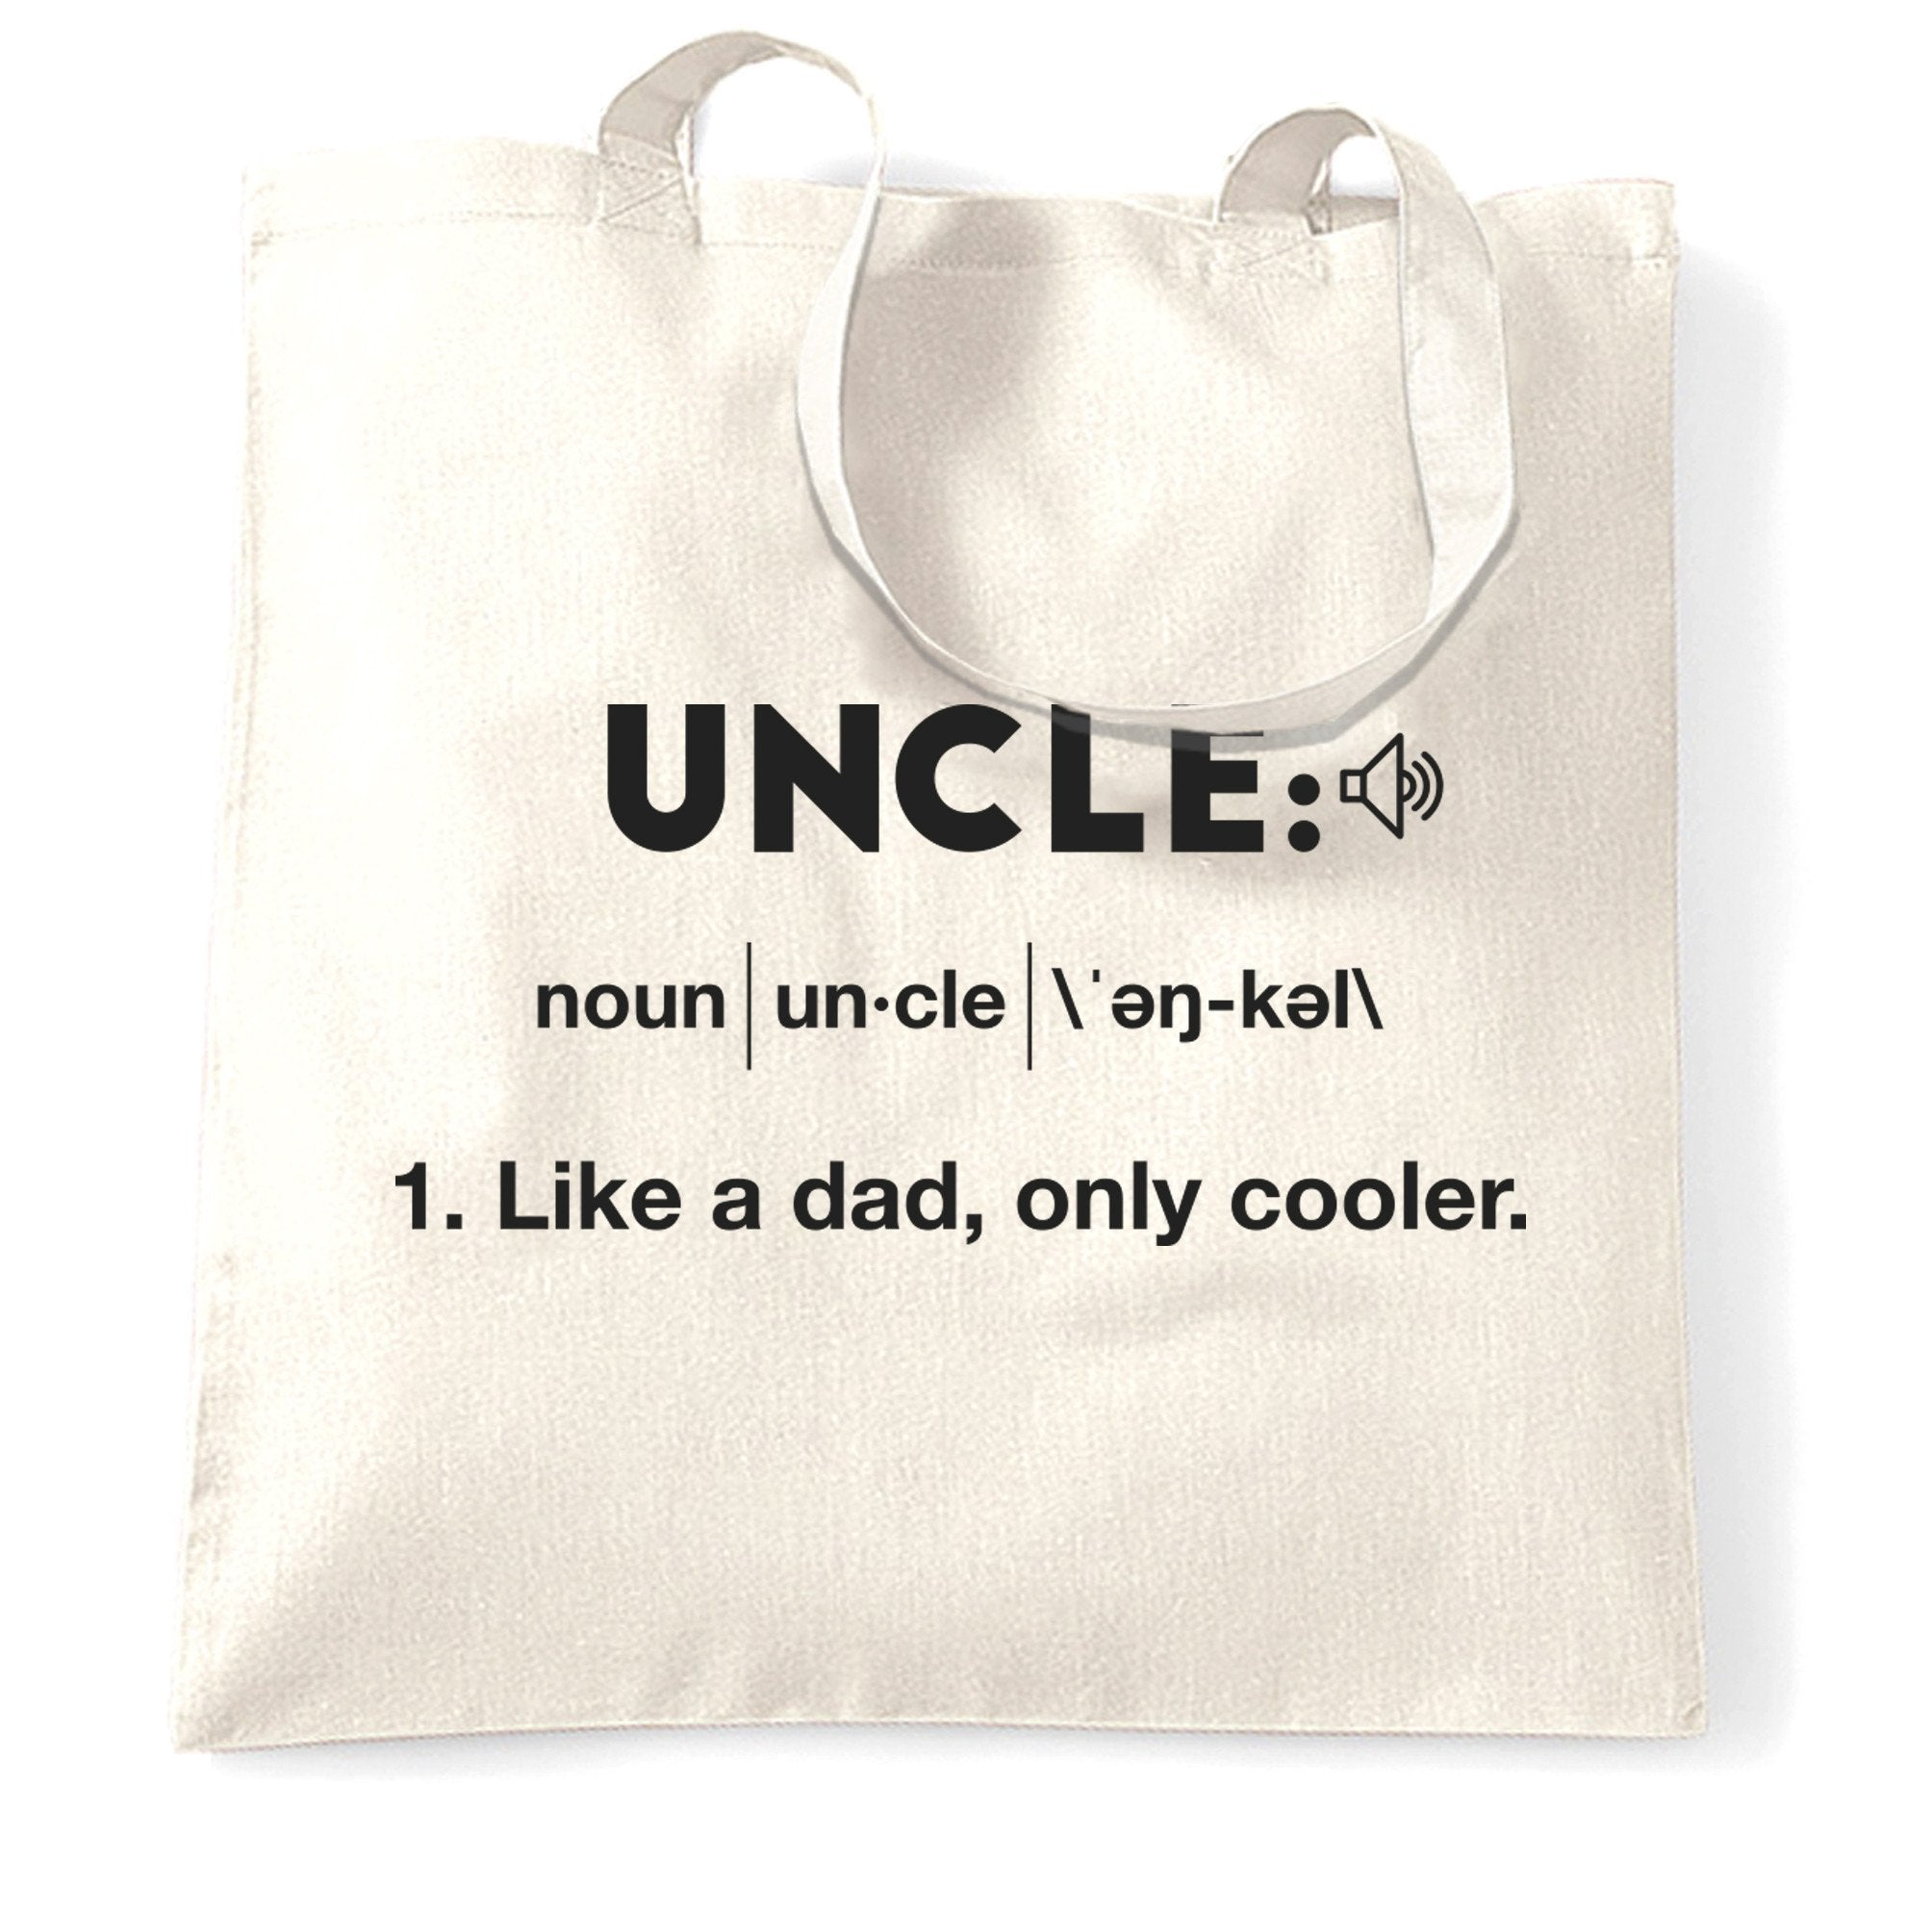 Novelty Tote Bag Uncle: Like A Dad, Only Cooler Joke